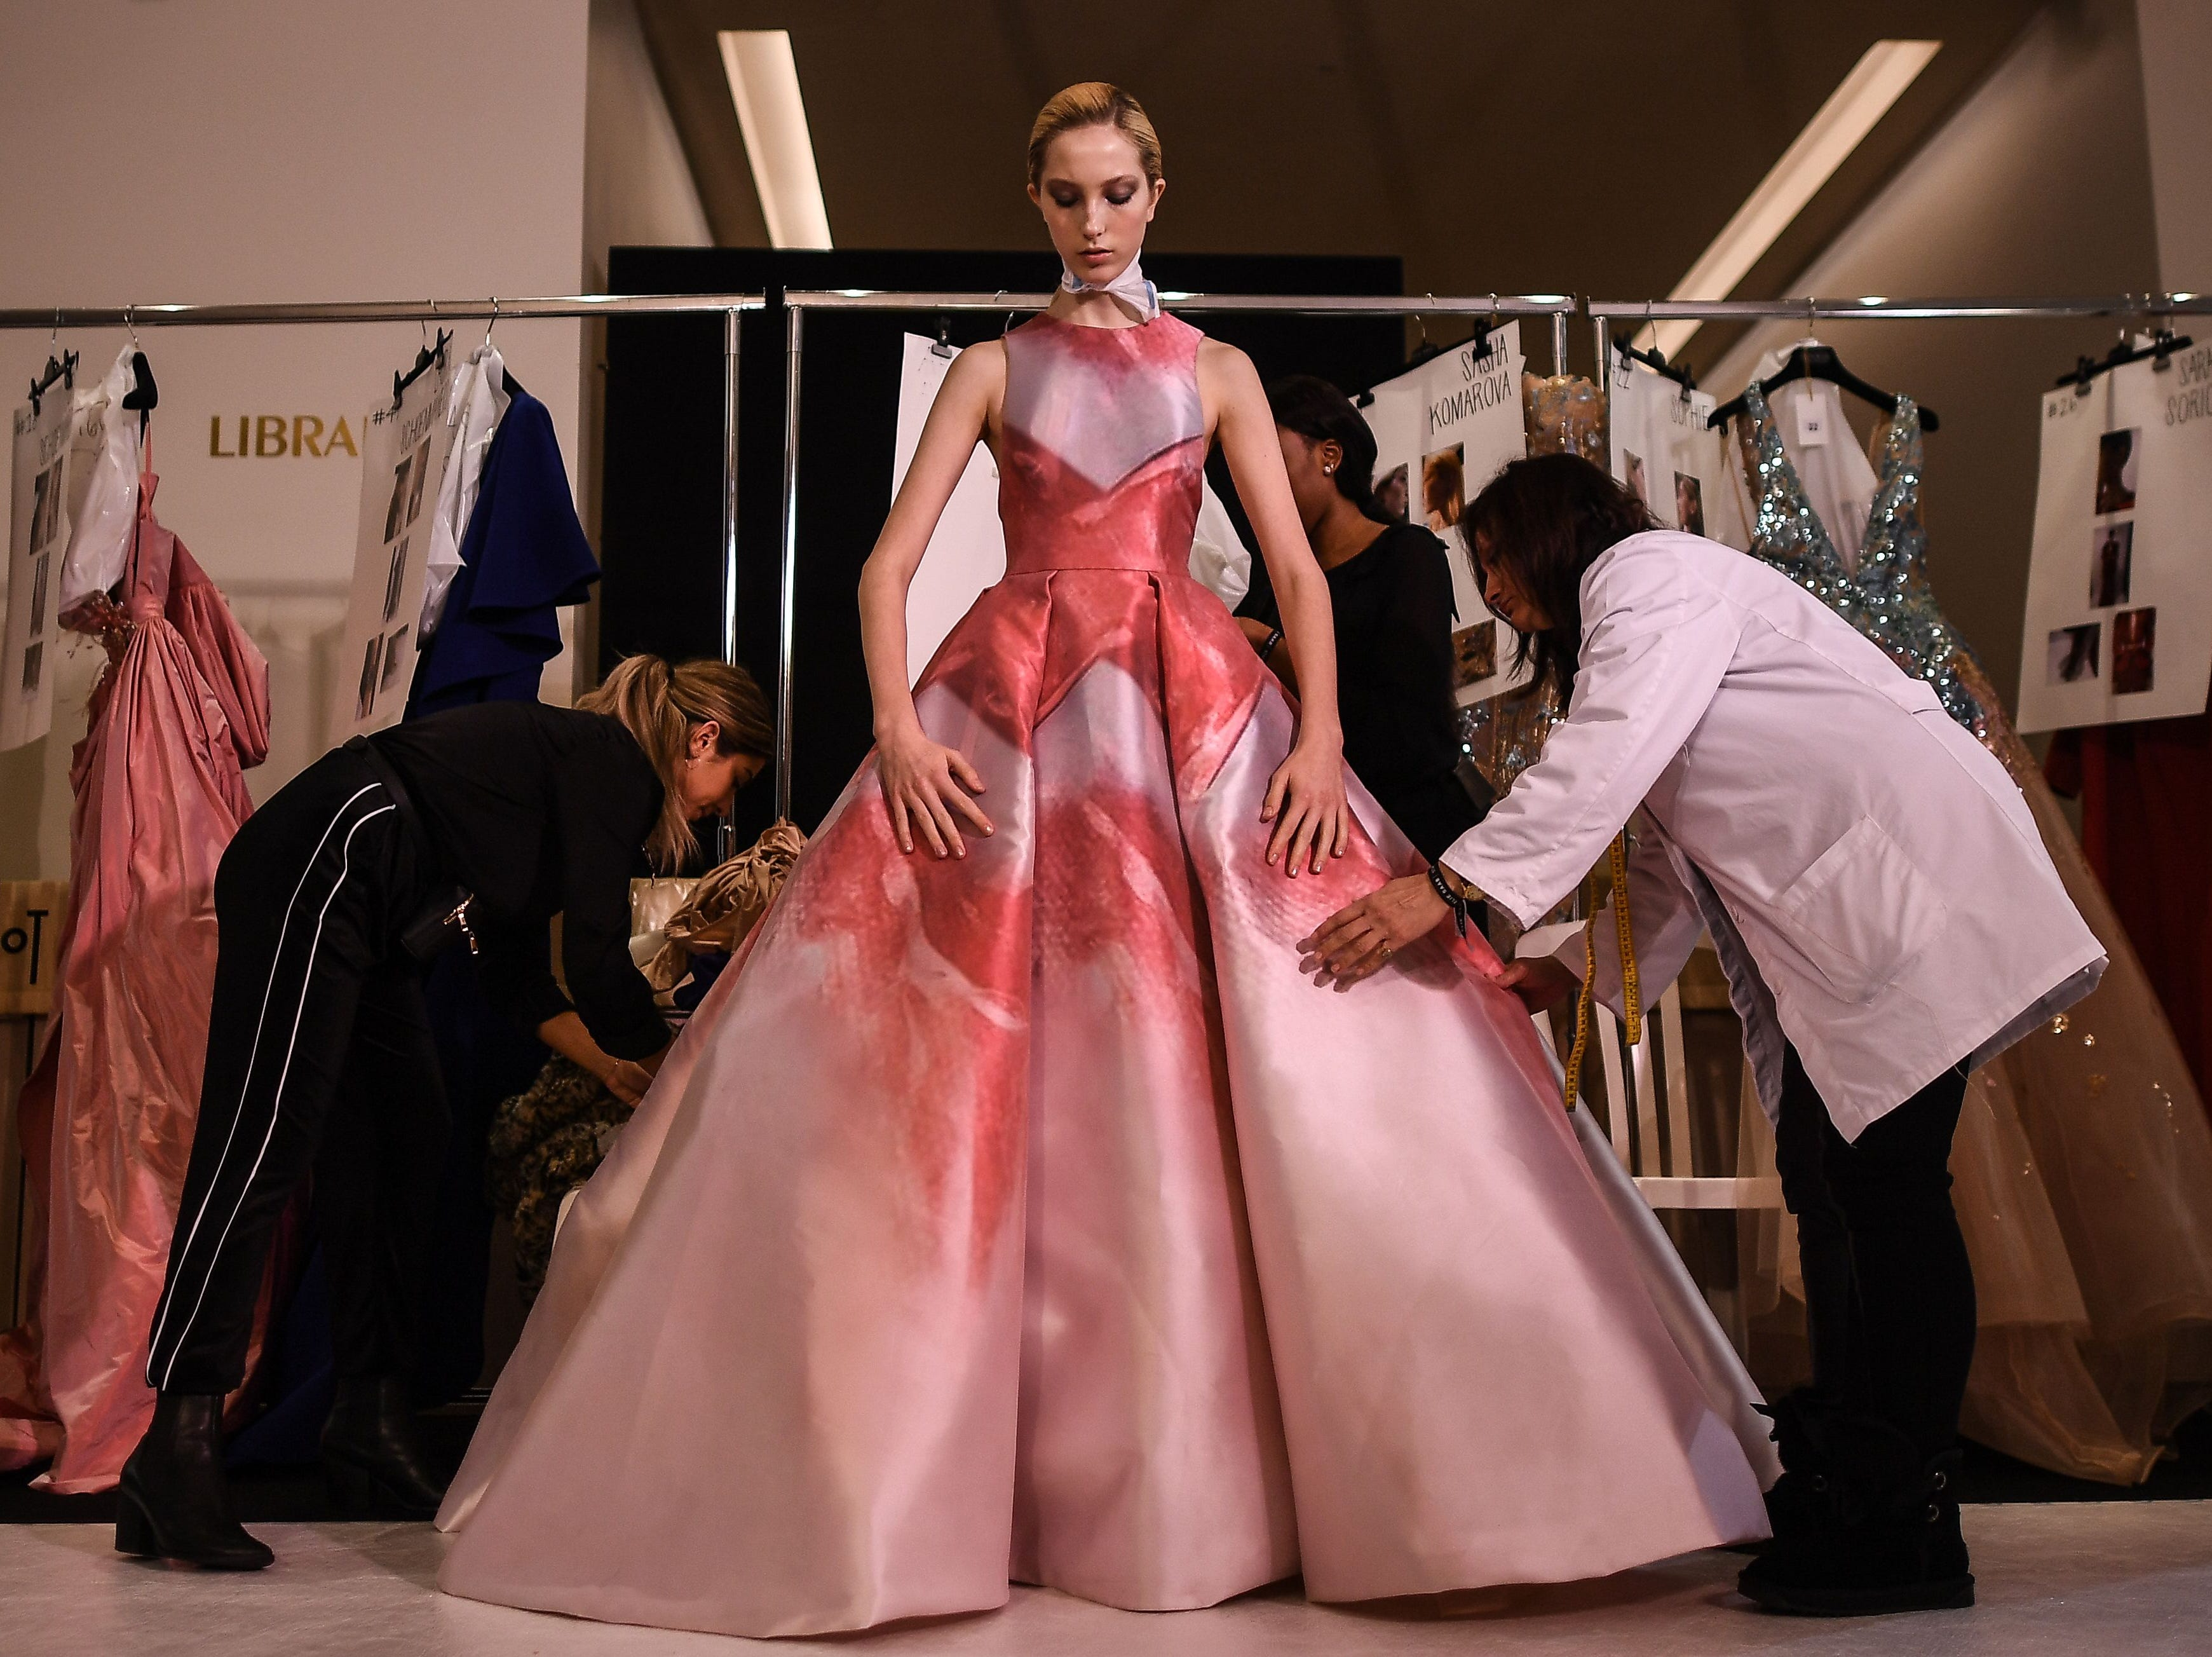 Assistants dress a model prior to the Elie Saab 2019 Spring-Summer Haute Couture collection fashion show in Paris, on January 23, 2019.